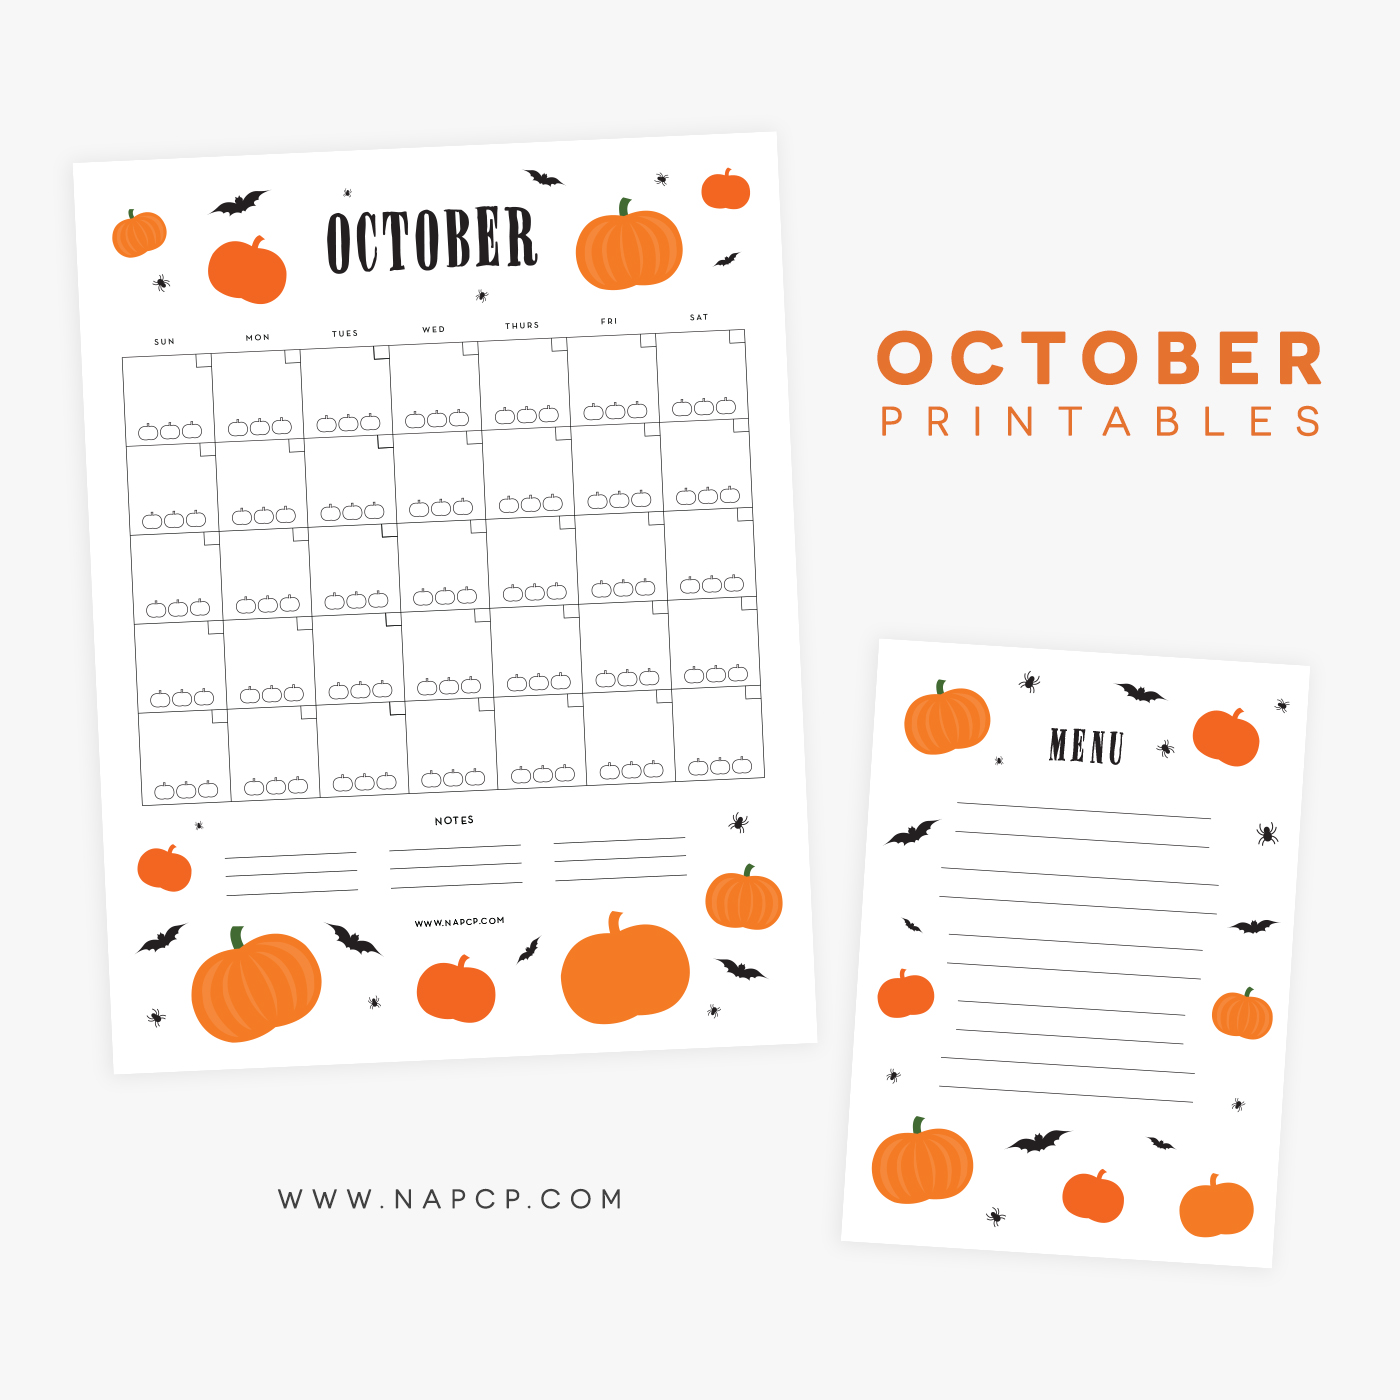 photo relating to Menu Printable named Oct Printable Menu and Calendar - Countrywide Affiliation